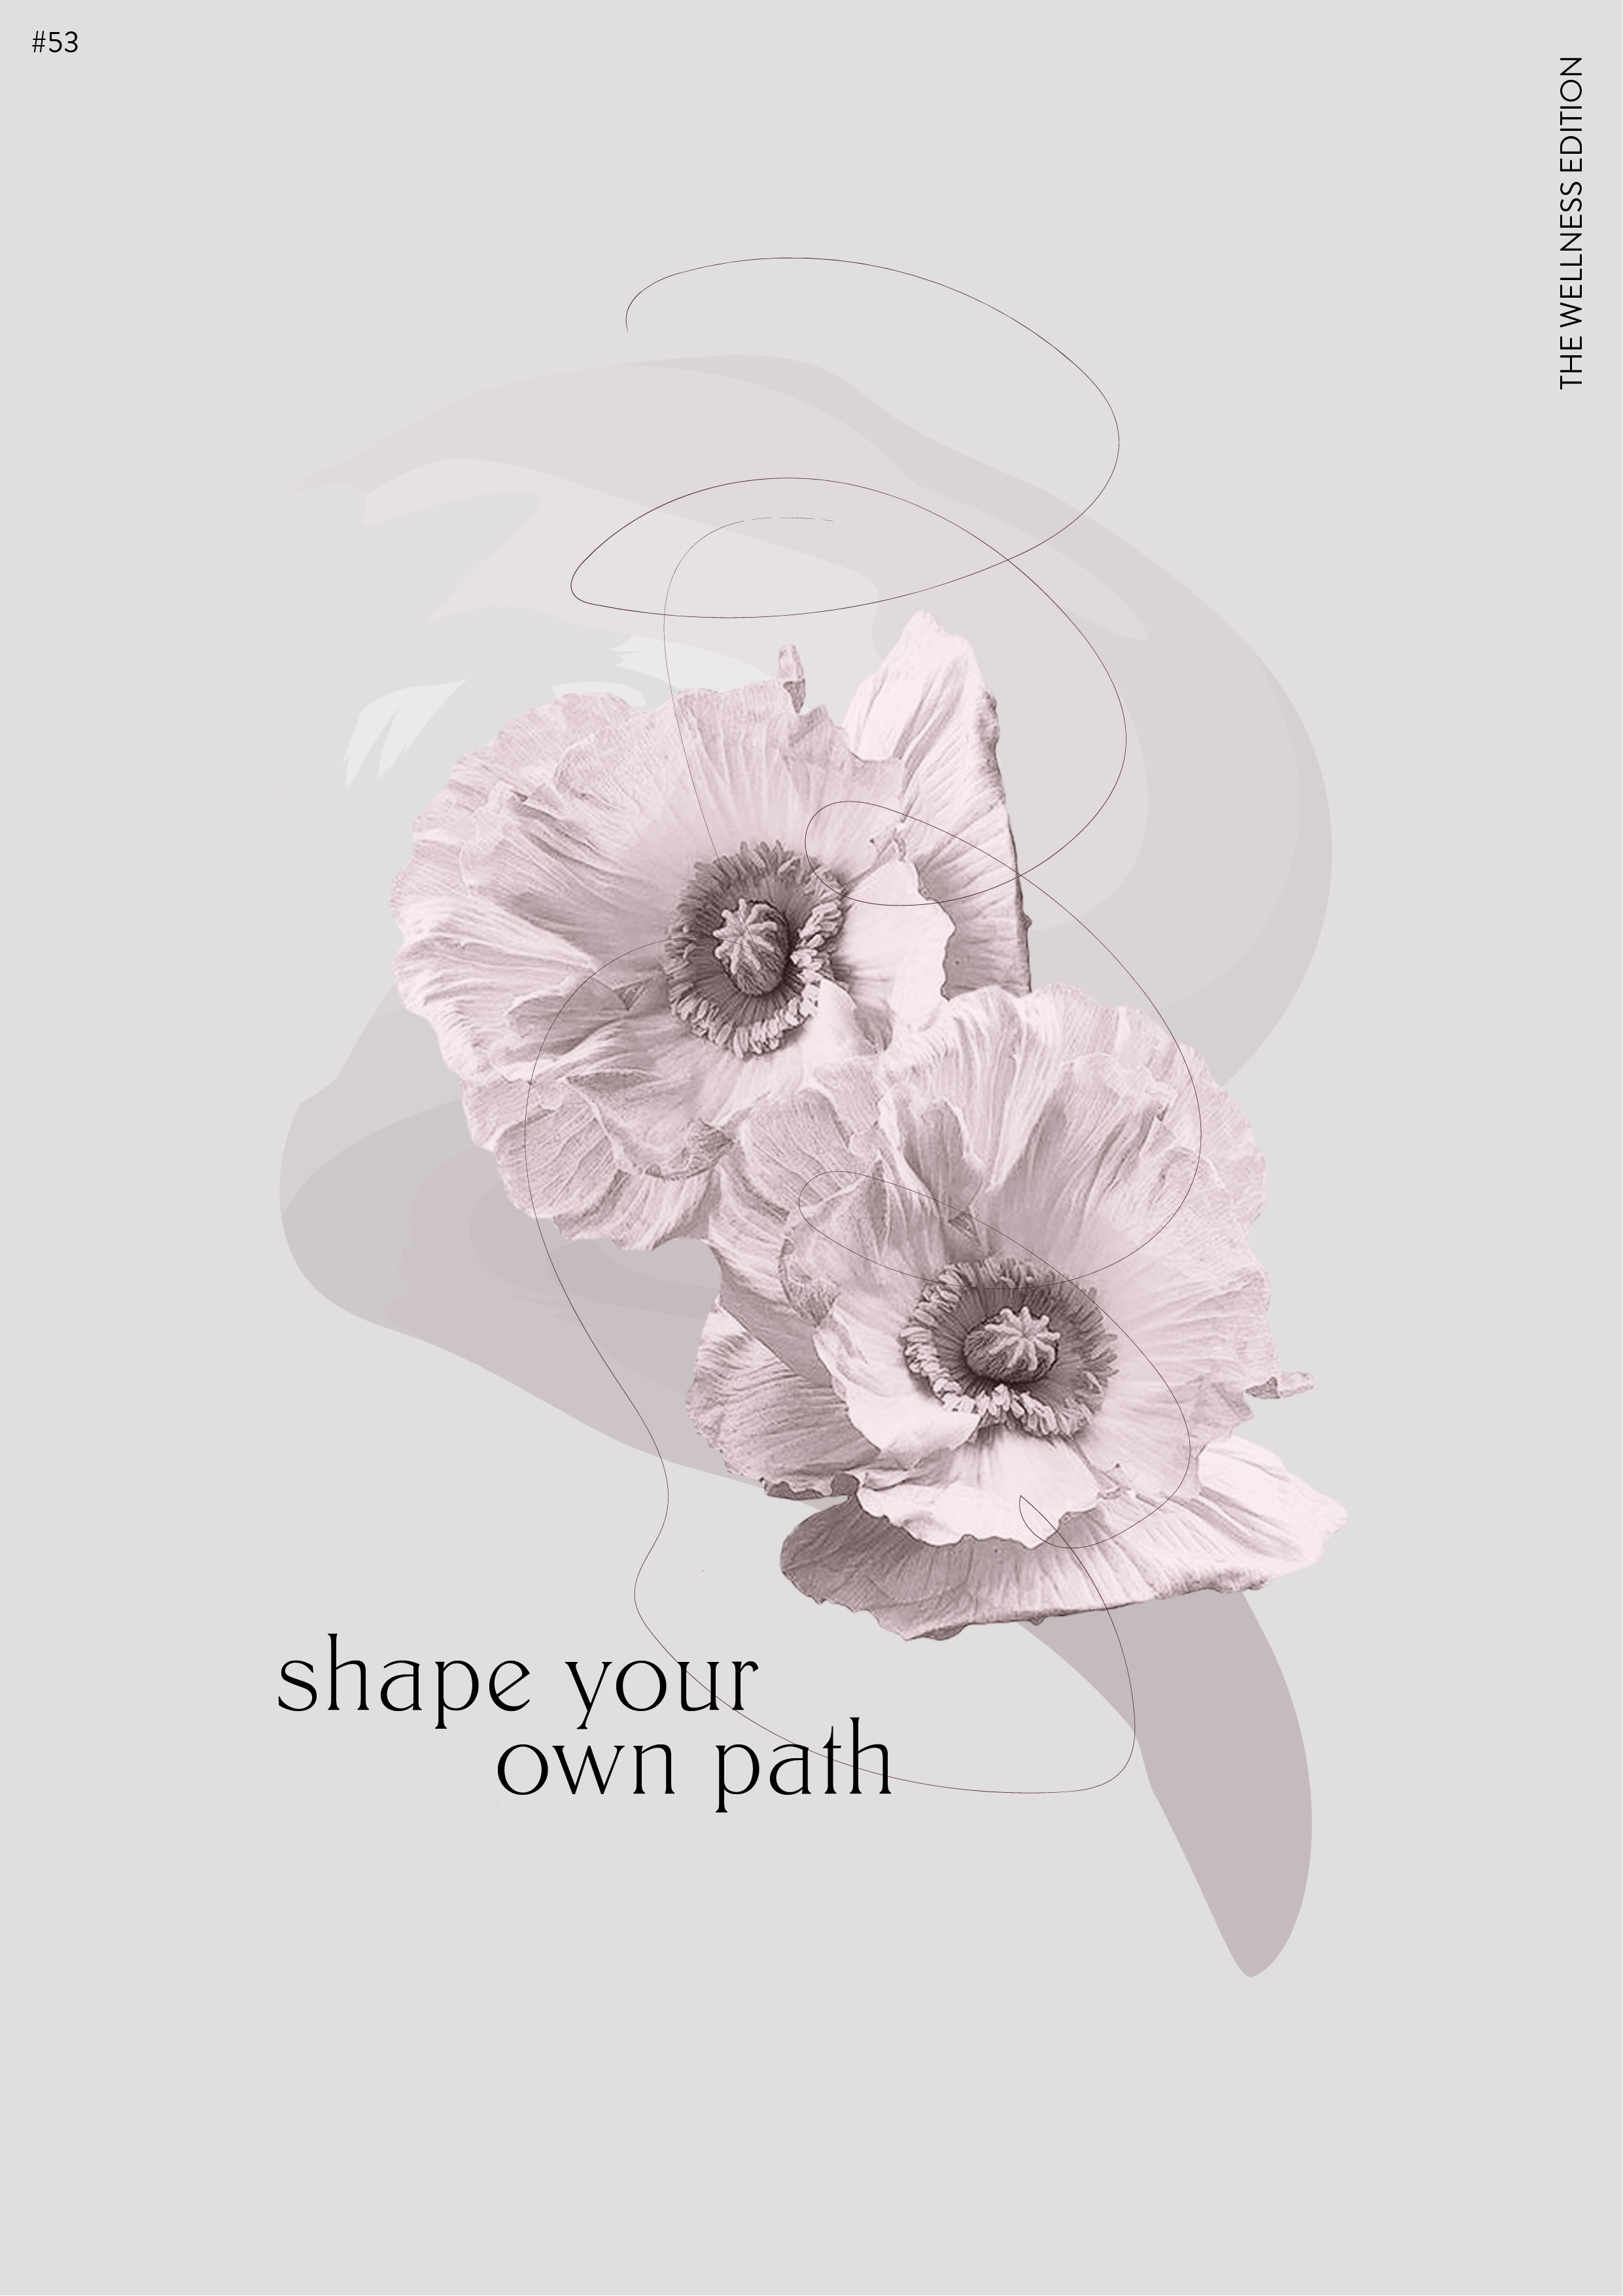 The Wellness Edition No.53 // Shape your own path (Phylleli Design Studio and Blog)